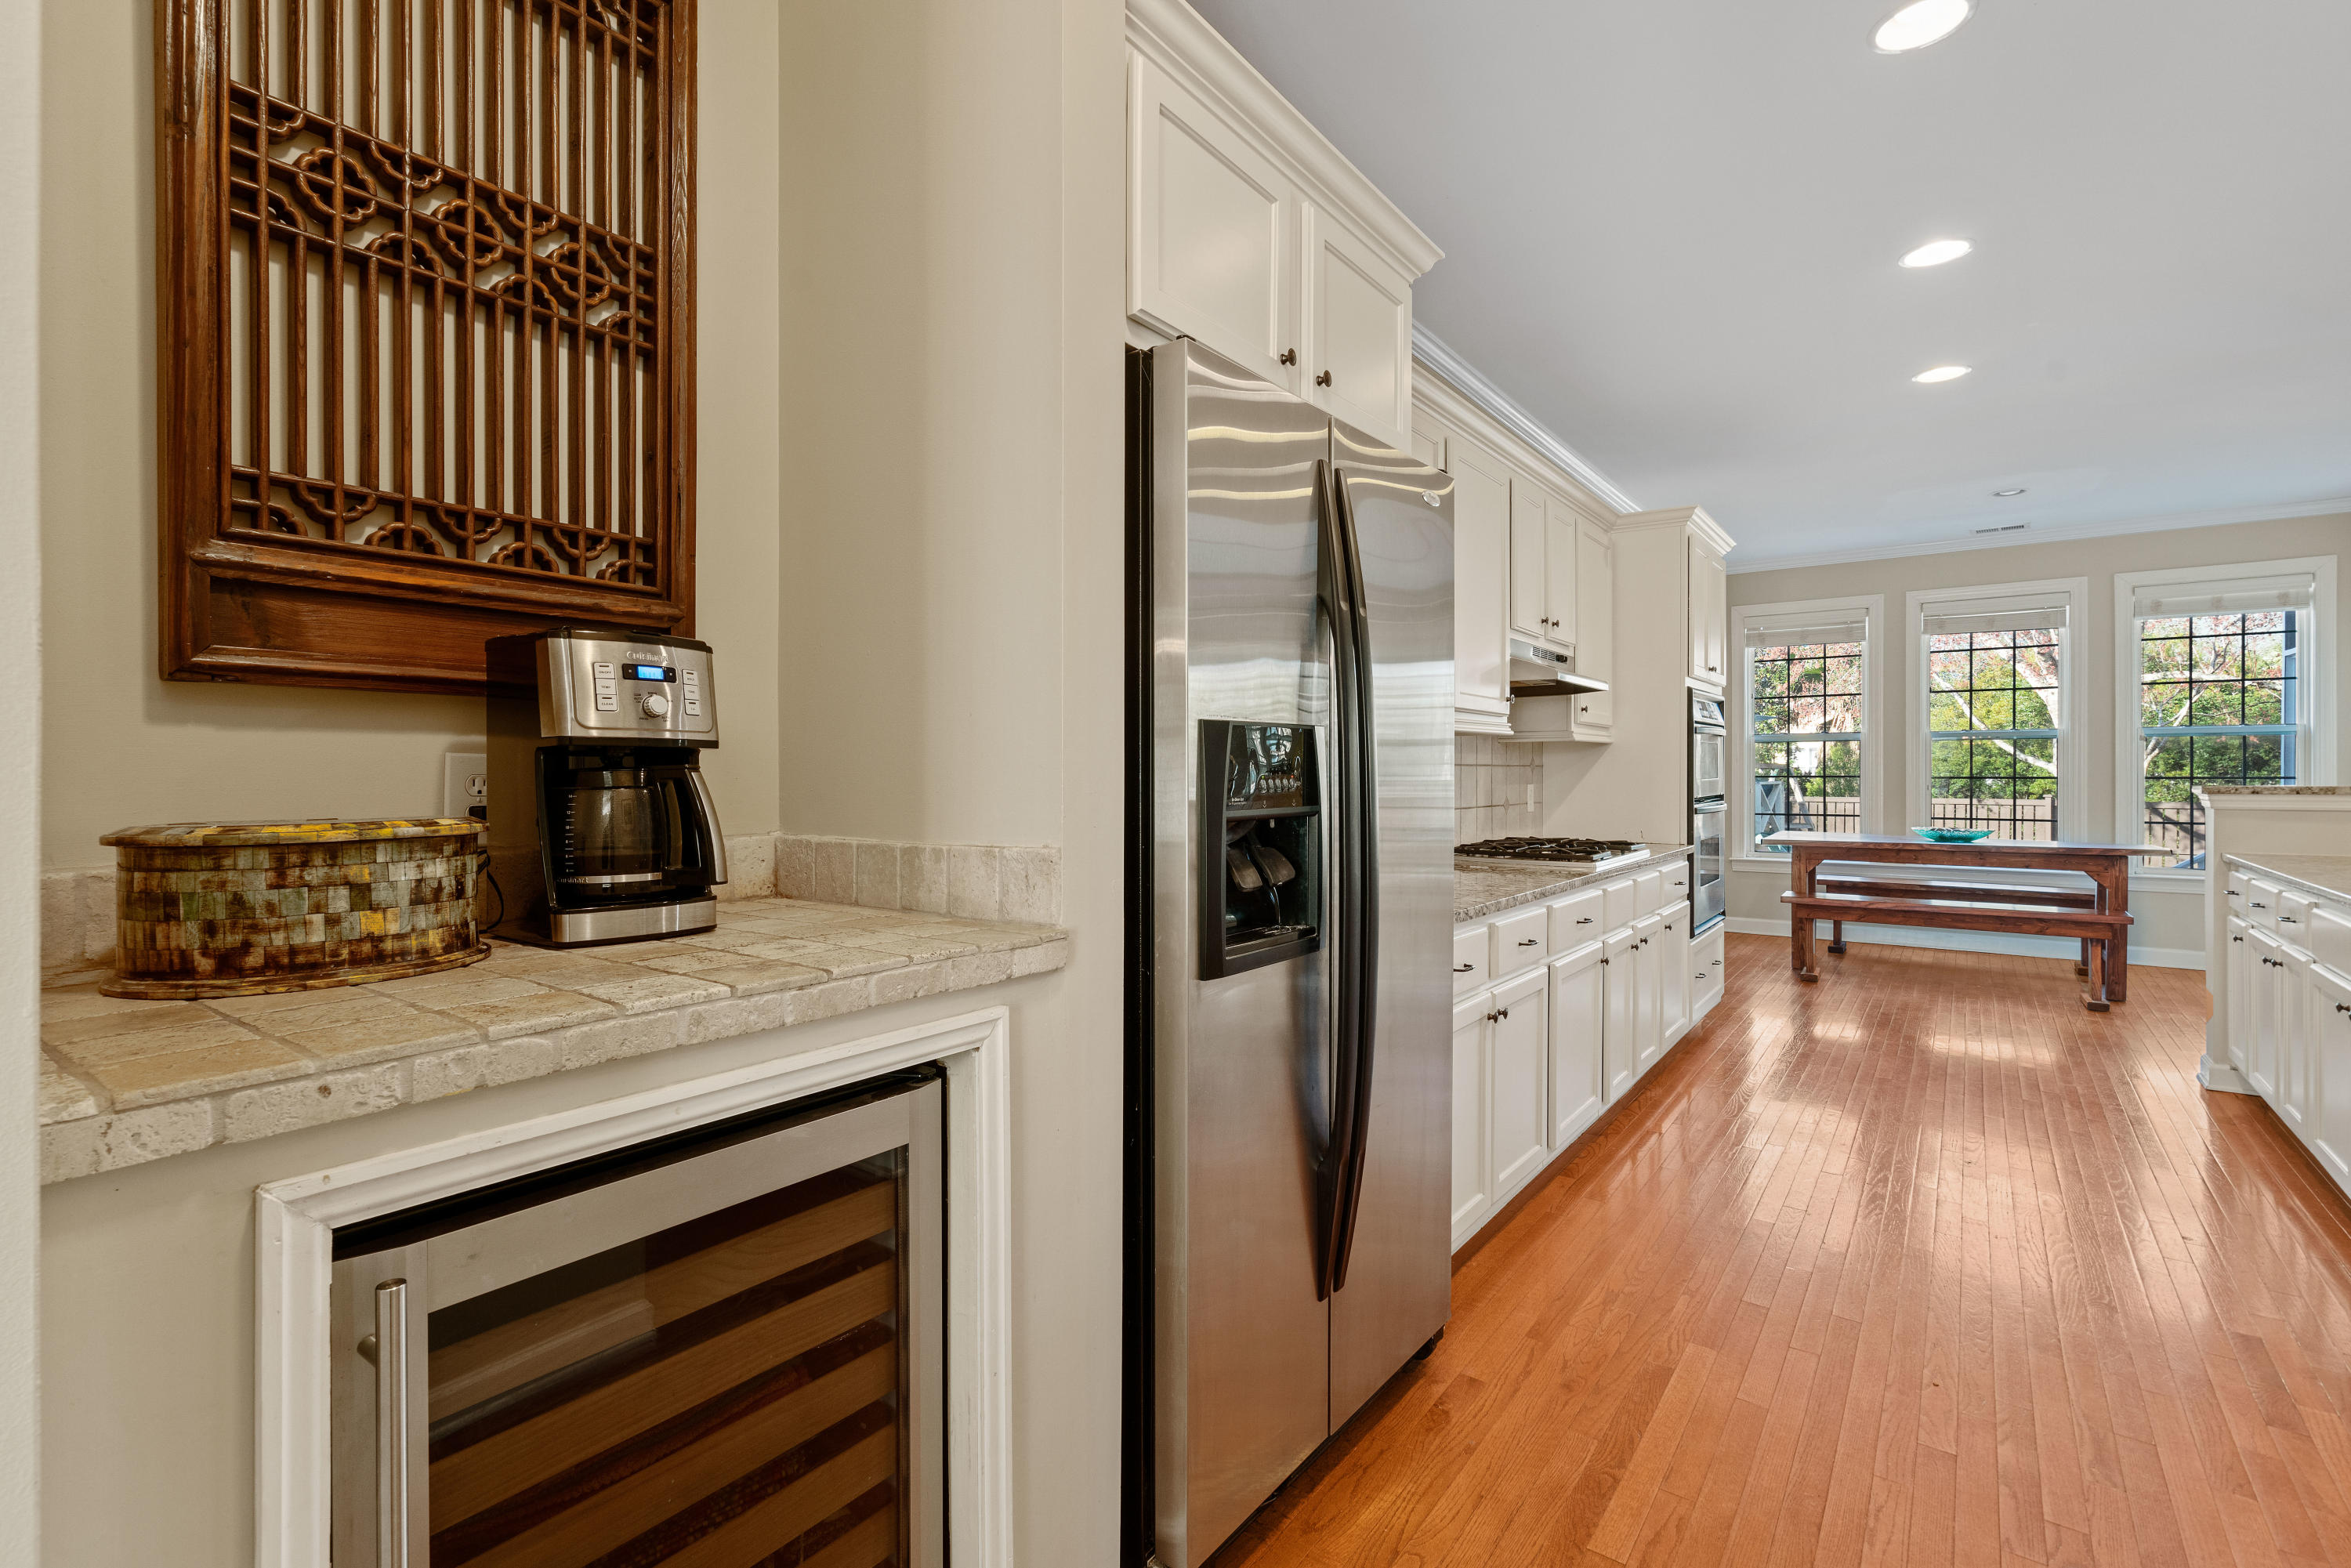 Dunes West Homes For Sale - 1600 Willowick, Mount Pleasant, SC - 28